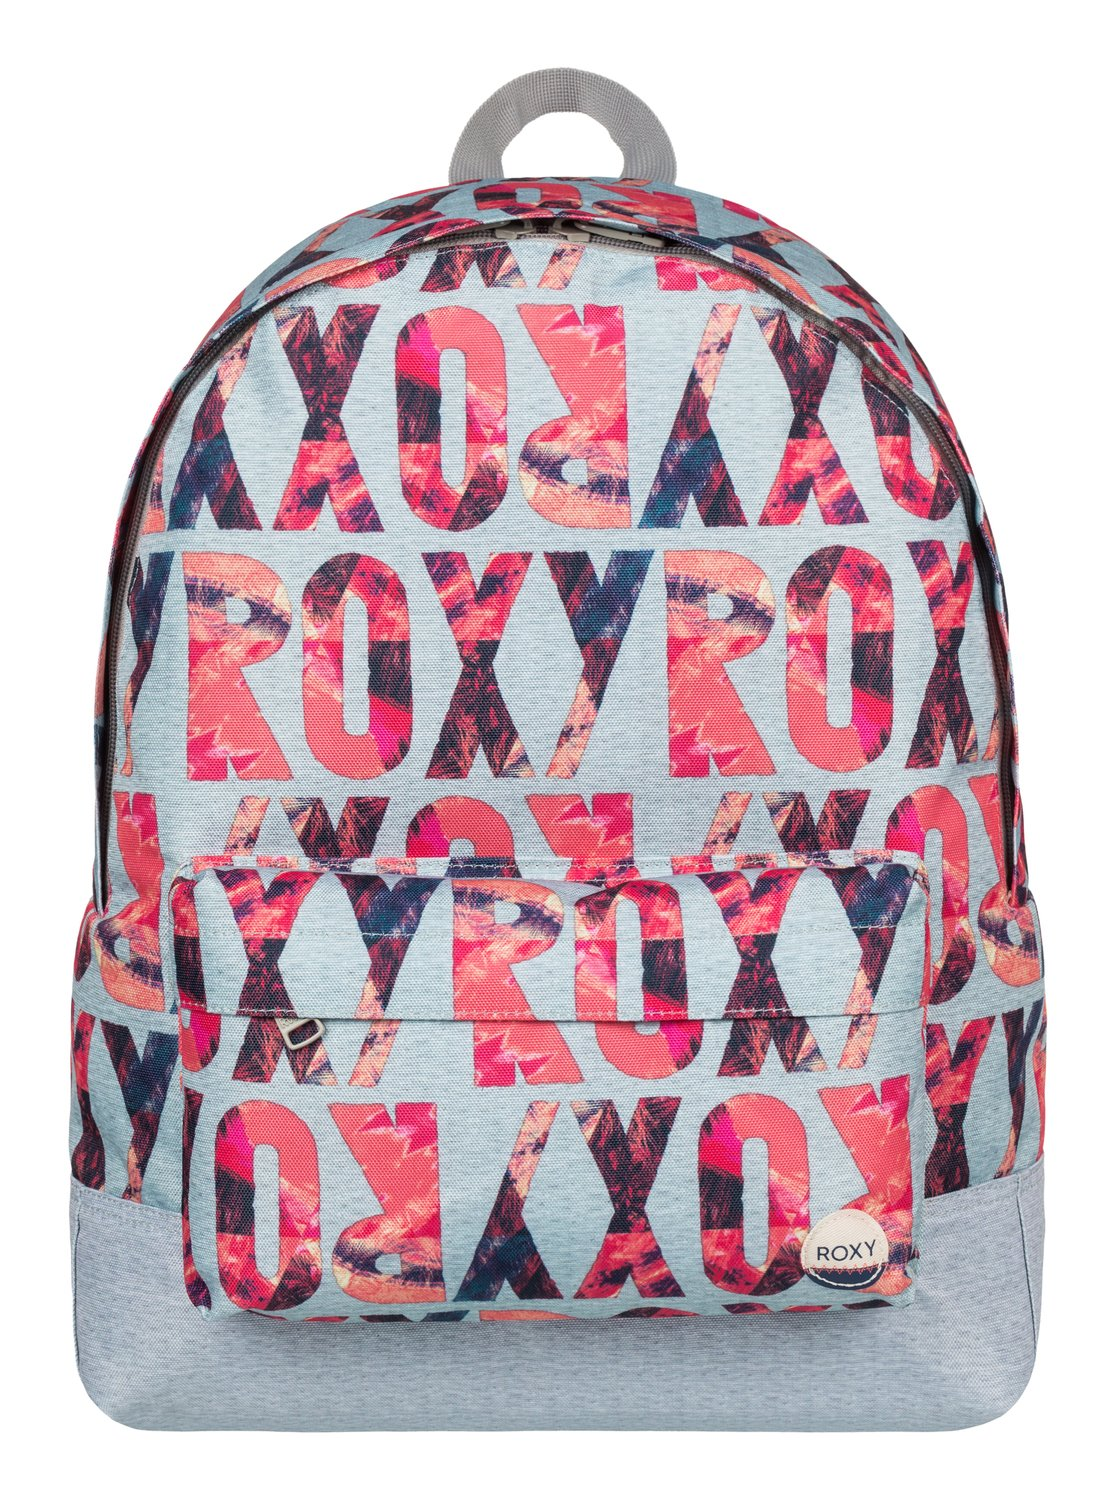 Sac à dos Roxy Sugar Baby Heather Heritage Heather gris YPKCj8G2